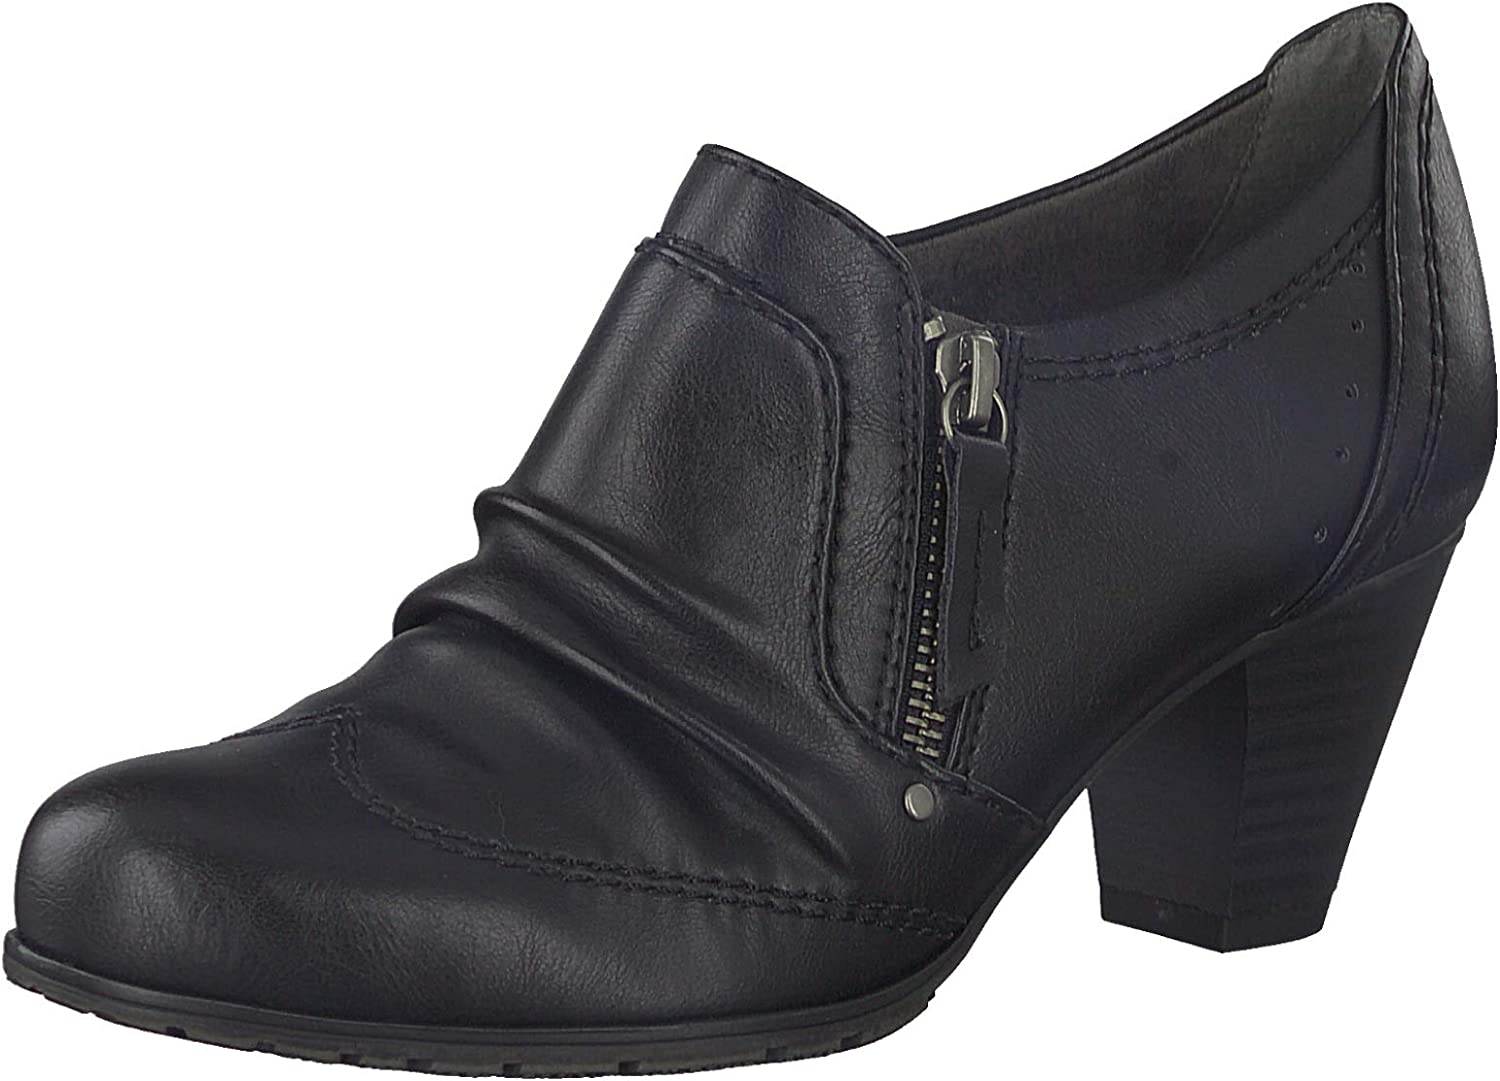 Jana shoes Ashley Bootie in Black